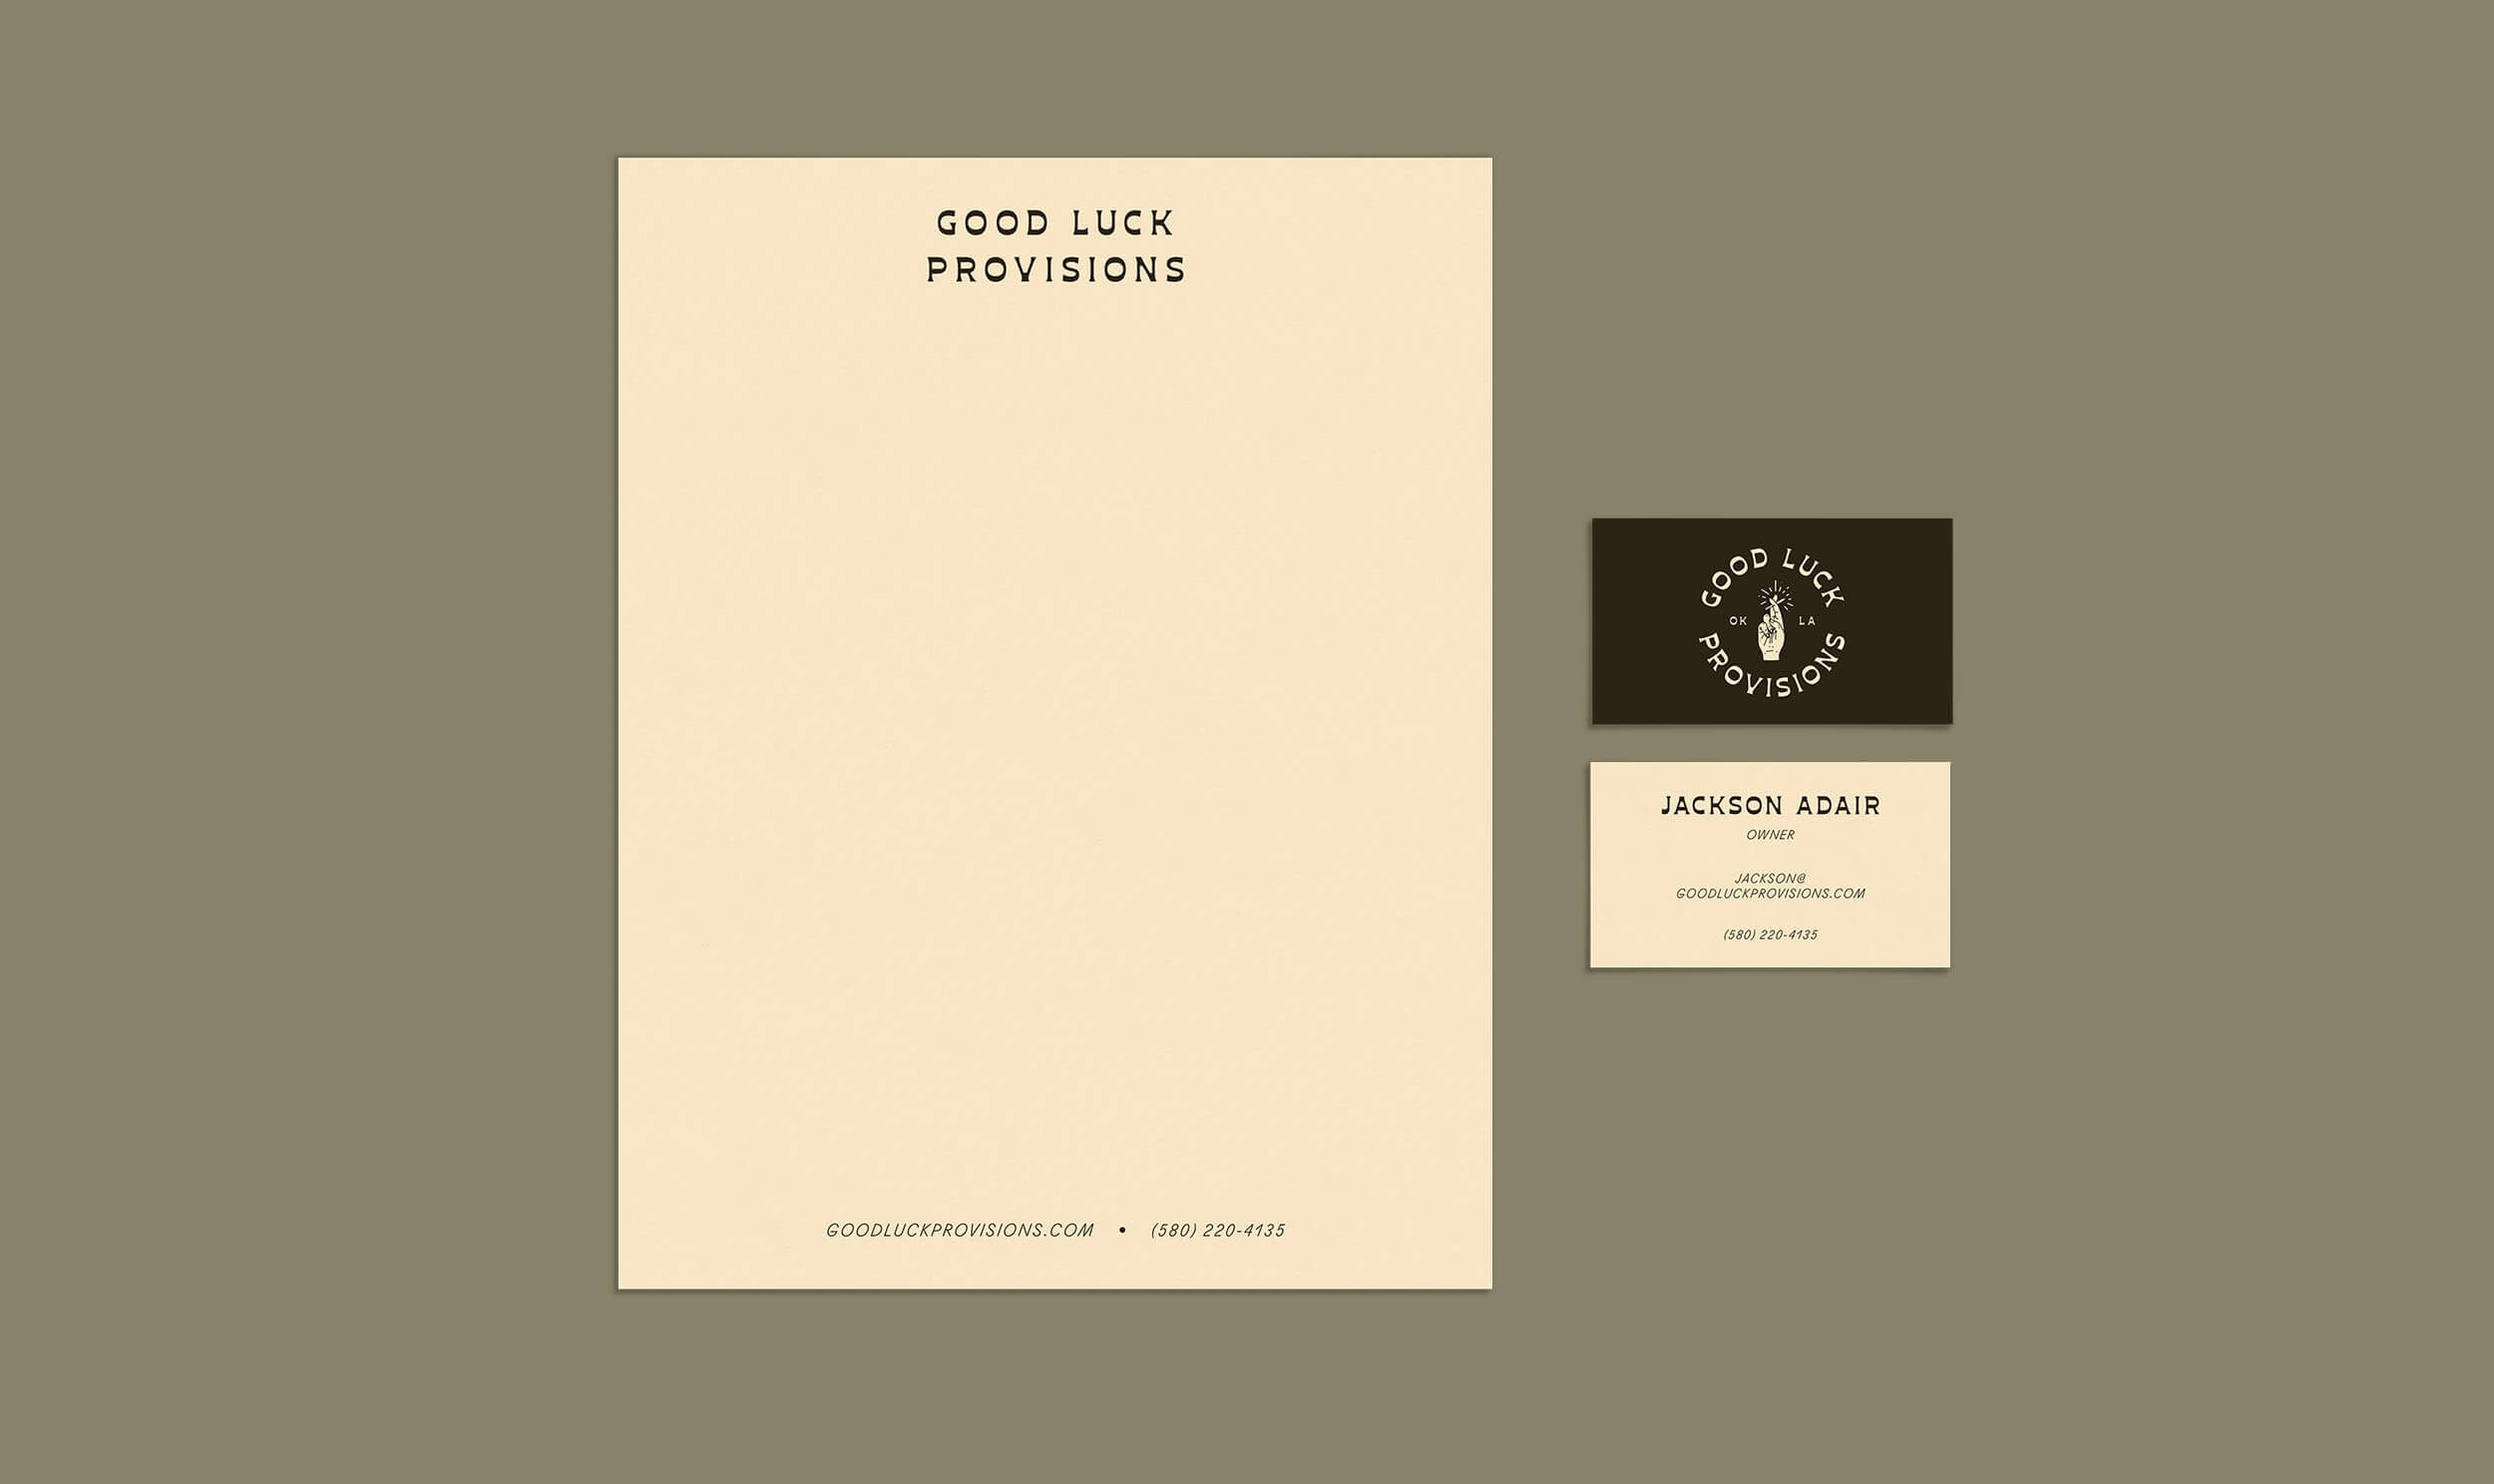 Stationery for Good Luck Provisions